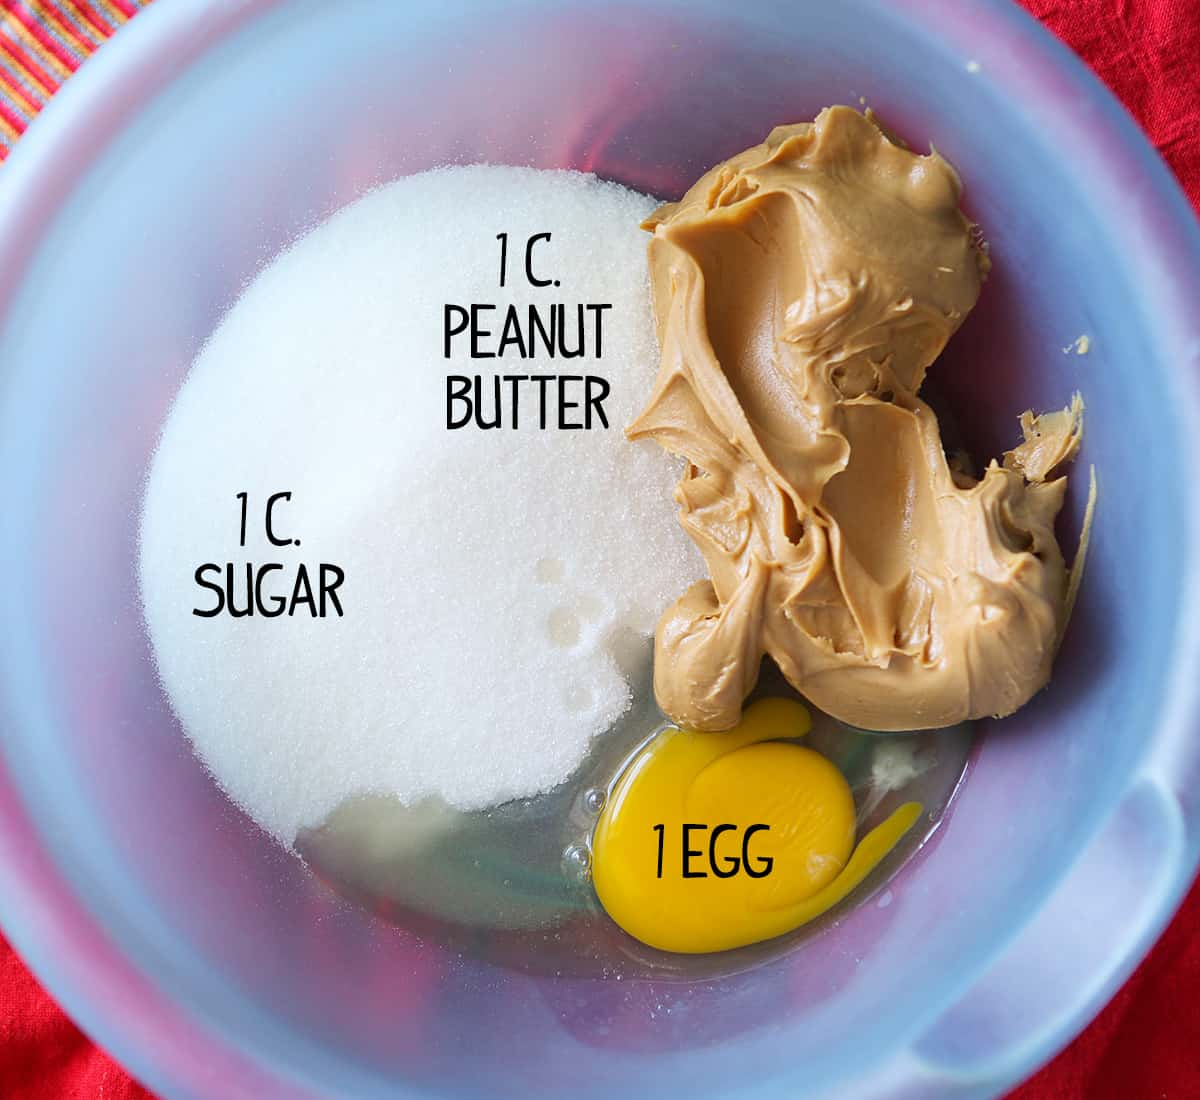 peanut butter, egg and sugar in a mixing bowl